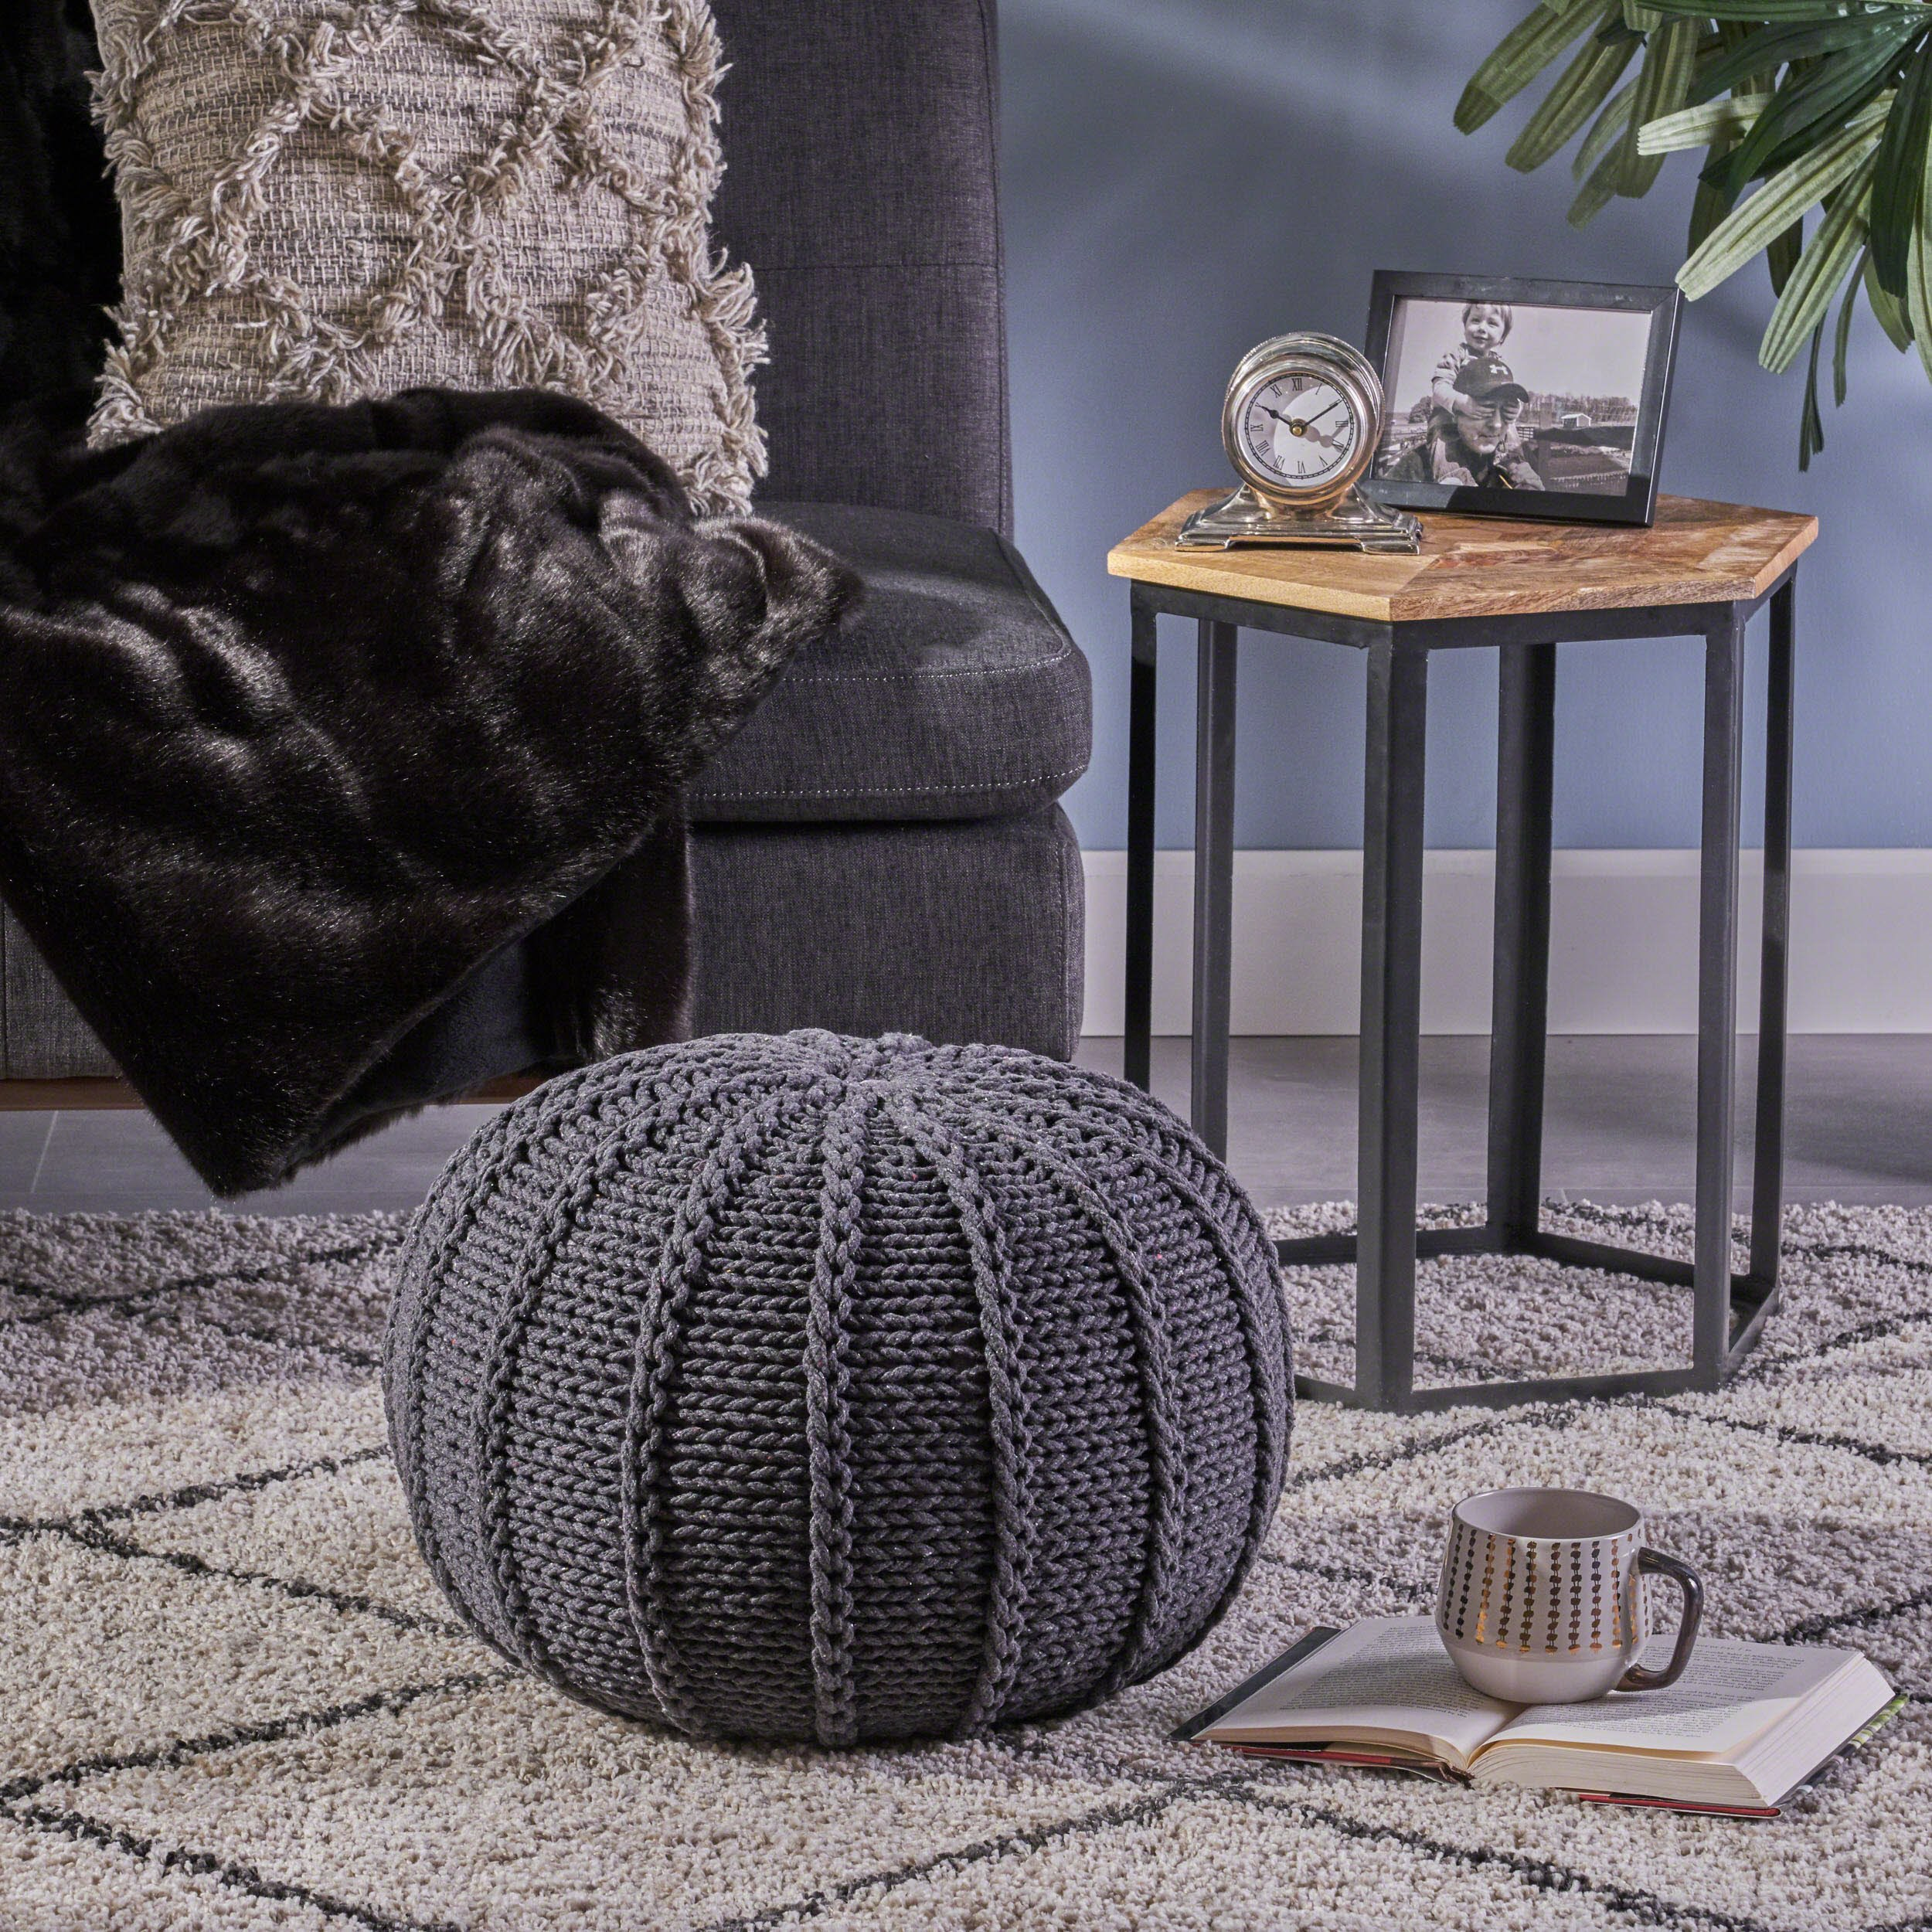 Christopher Knight Home 304441 Agatha Knitted Cotton Pouf, Dark Grey, by Christopher Knight Home